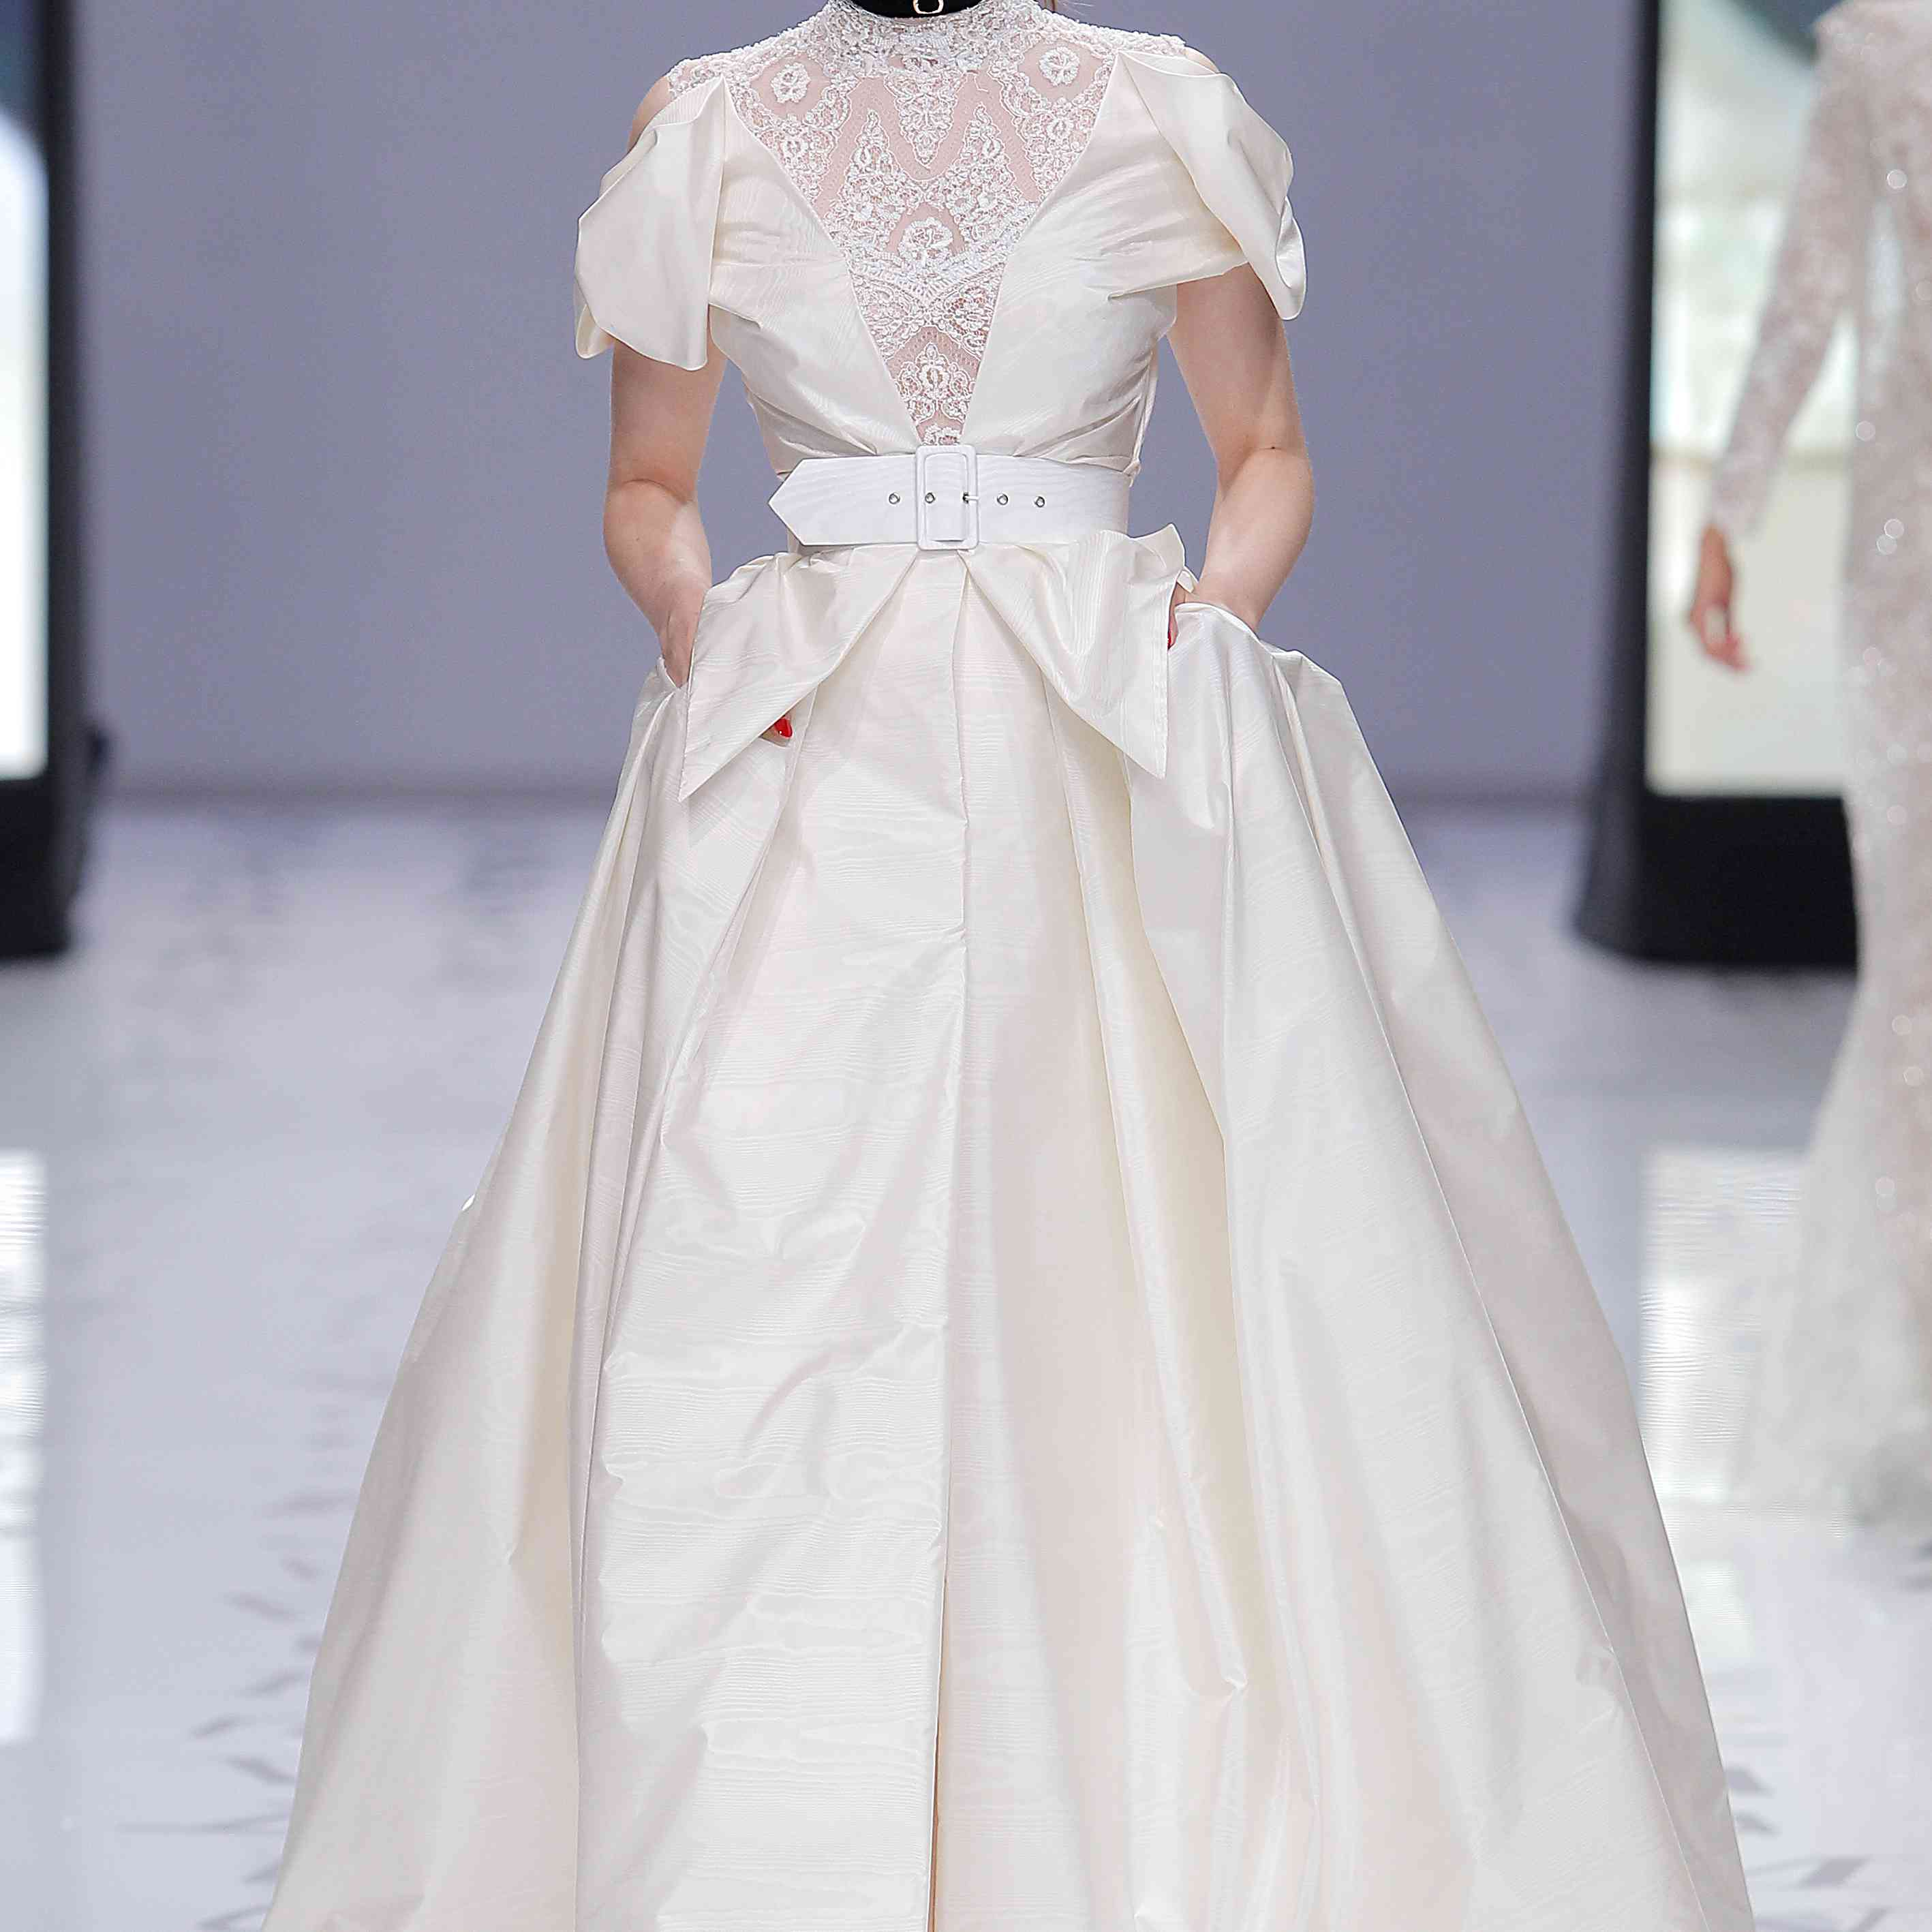 Model in a multi-piece satin ballgown with a rhinestoned lace bodice and a thick white belt at the waist